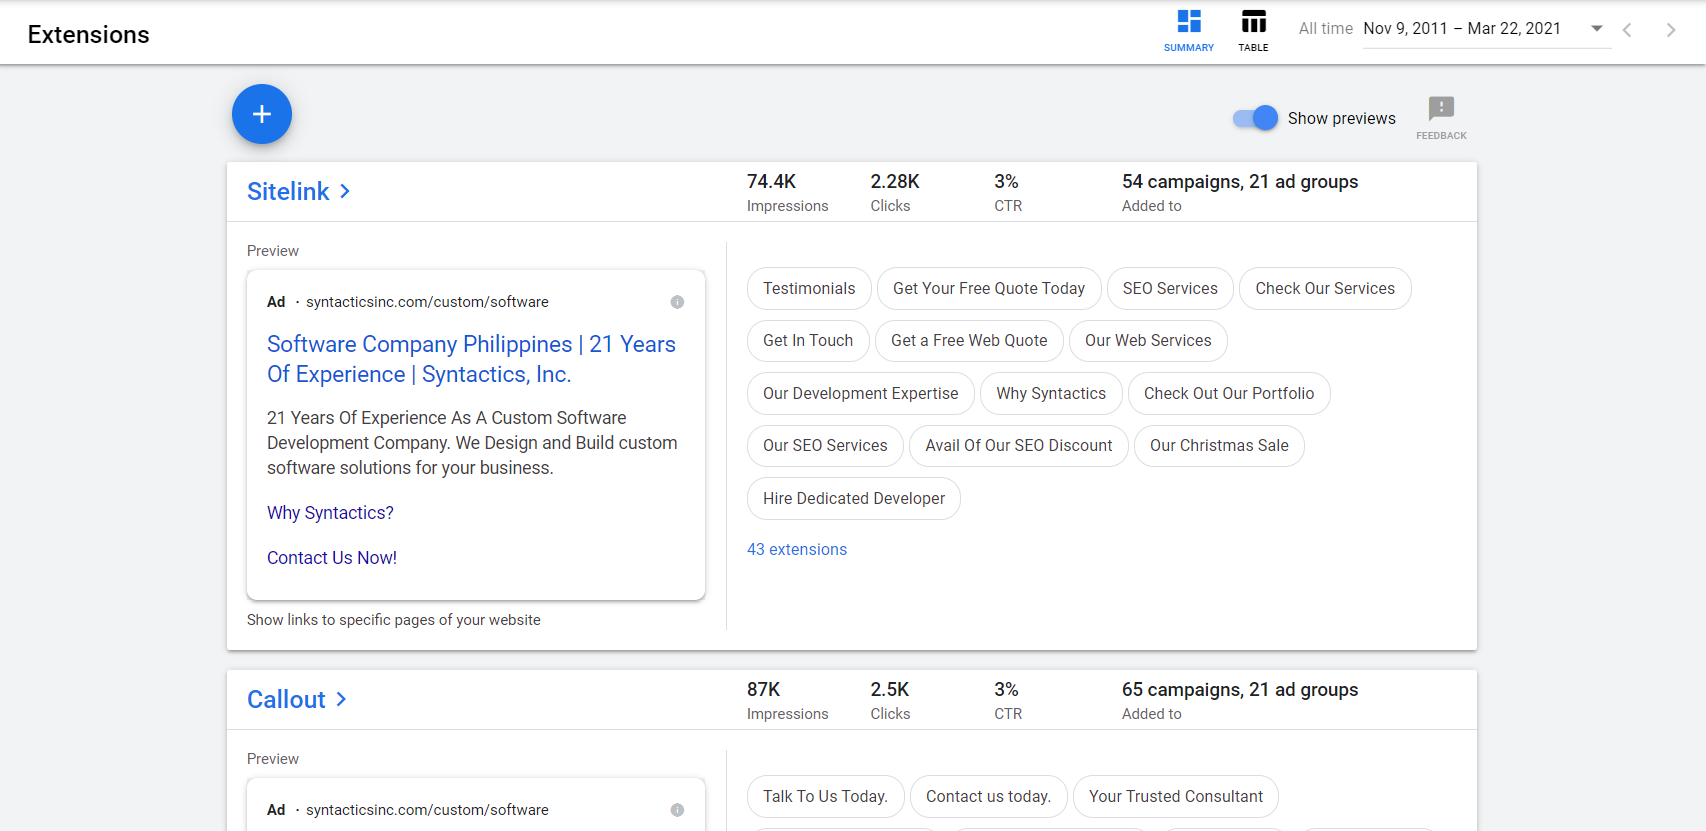 How to Evaluate Your Google Ads Performance Dashboard Extensions Tab